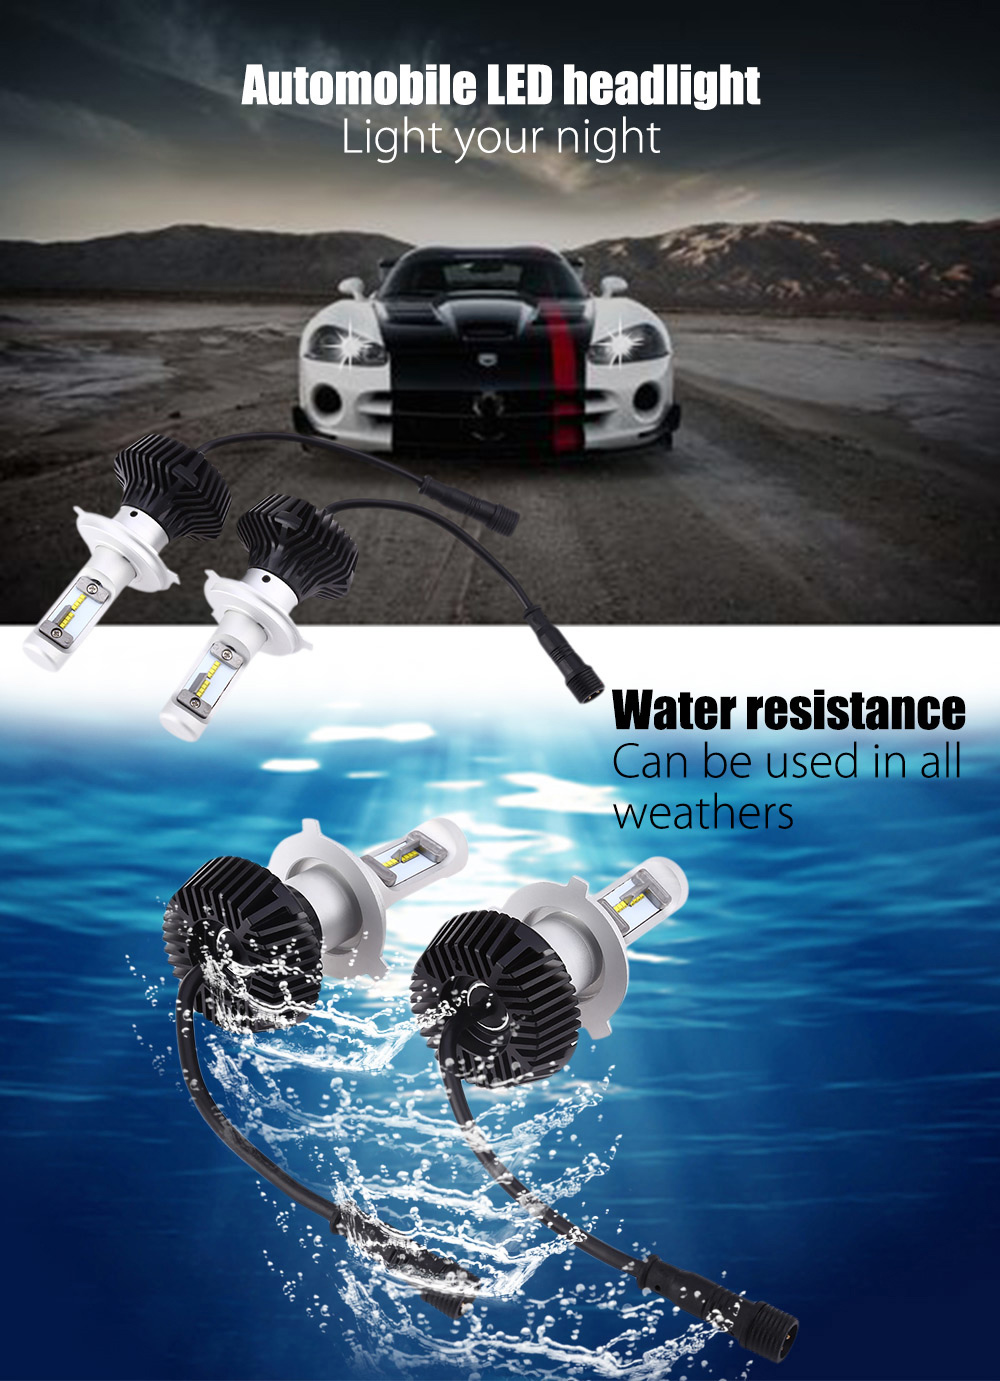 Universal H7 Car Integrated LED Headlight 6500K Water Resistance 60W Bright Vehicle Lamp 60W Long Life More 50000 Hours<br><br>Aliexpress